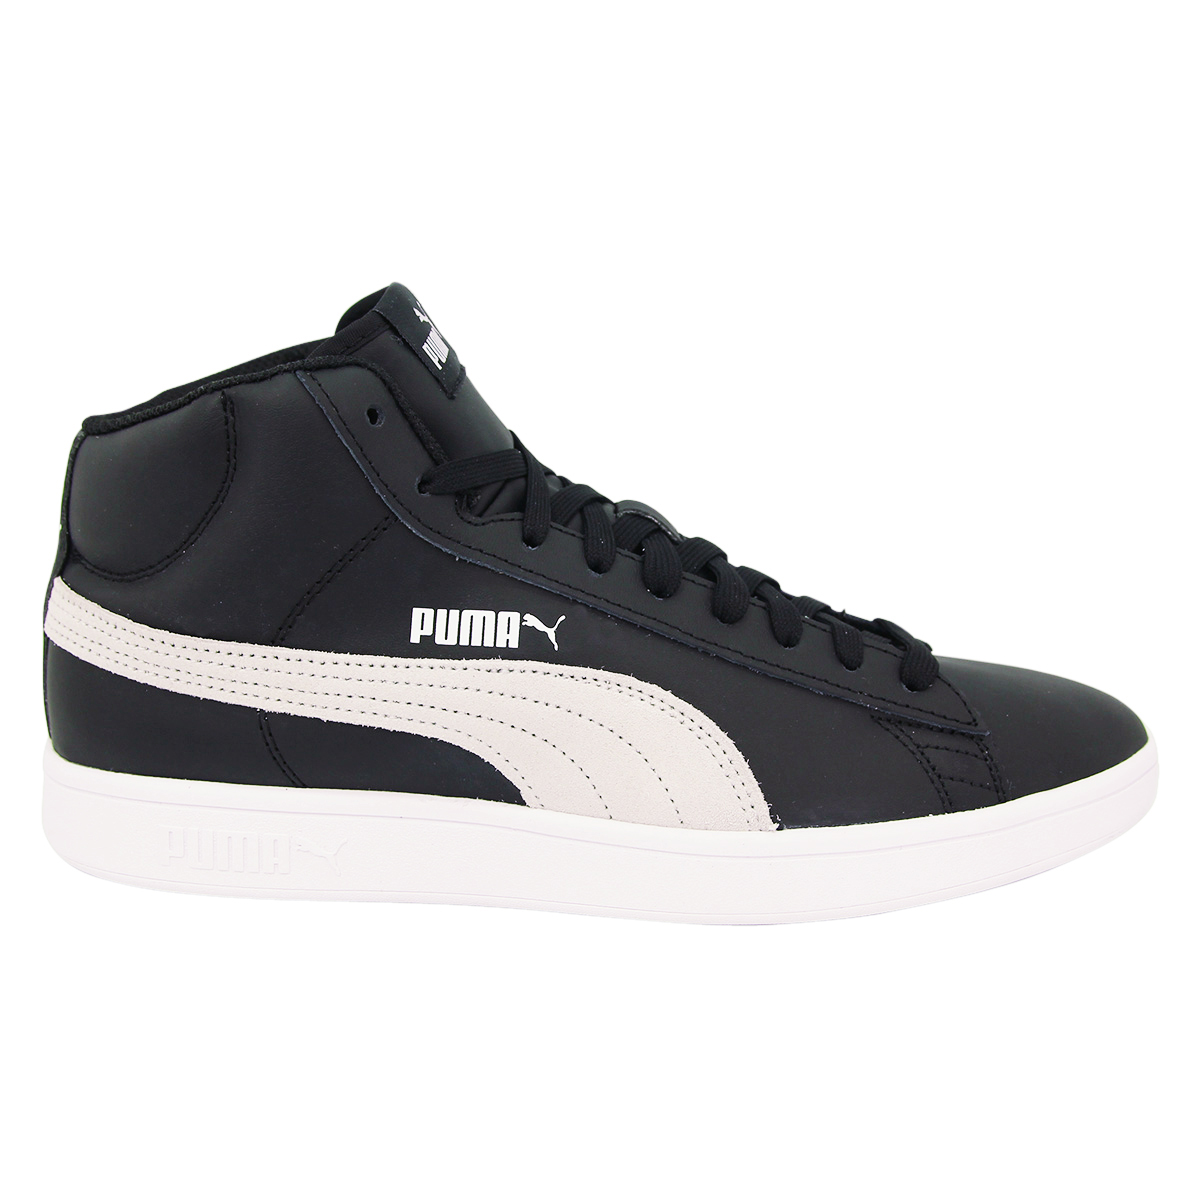 BASKETS BASSES SYNTHÉTIQUE SMASH V2 MID L HIGH ANKLE PUMA